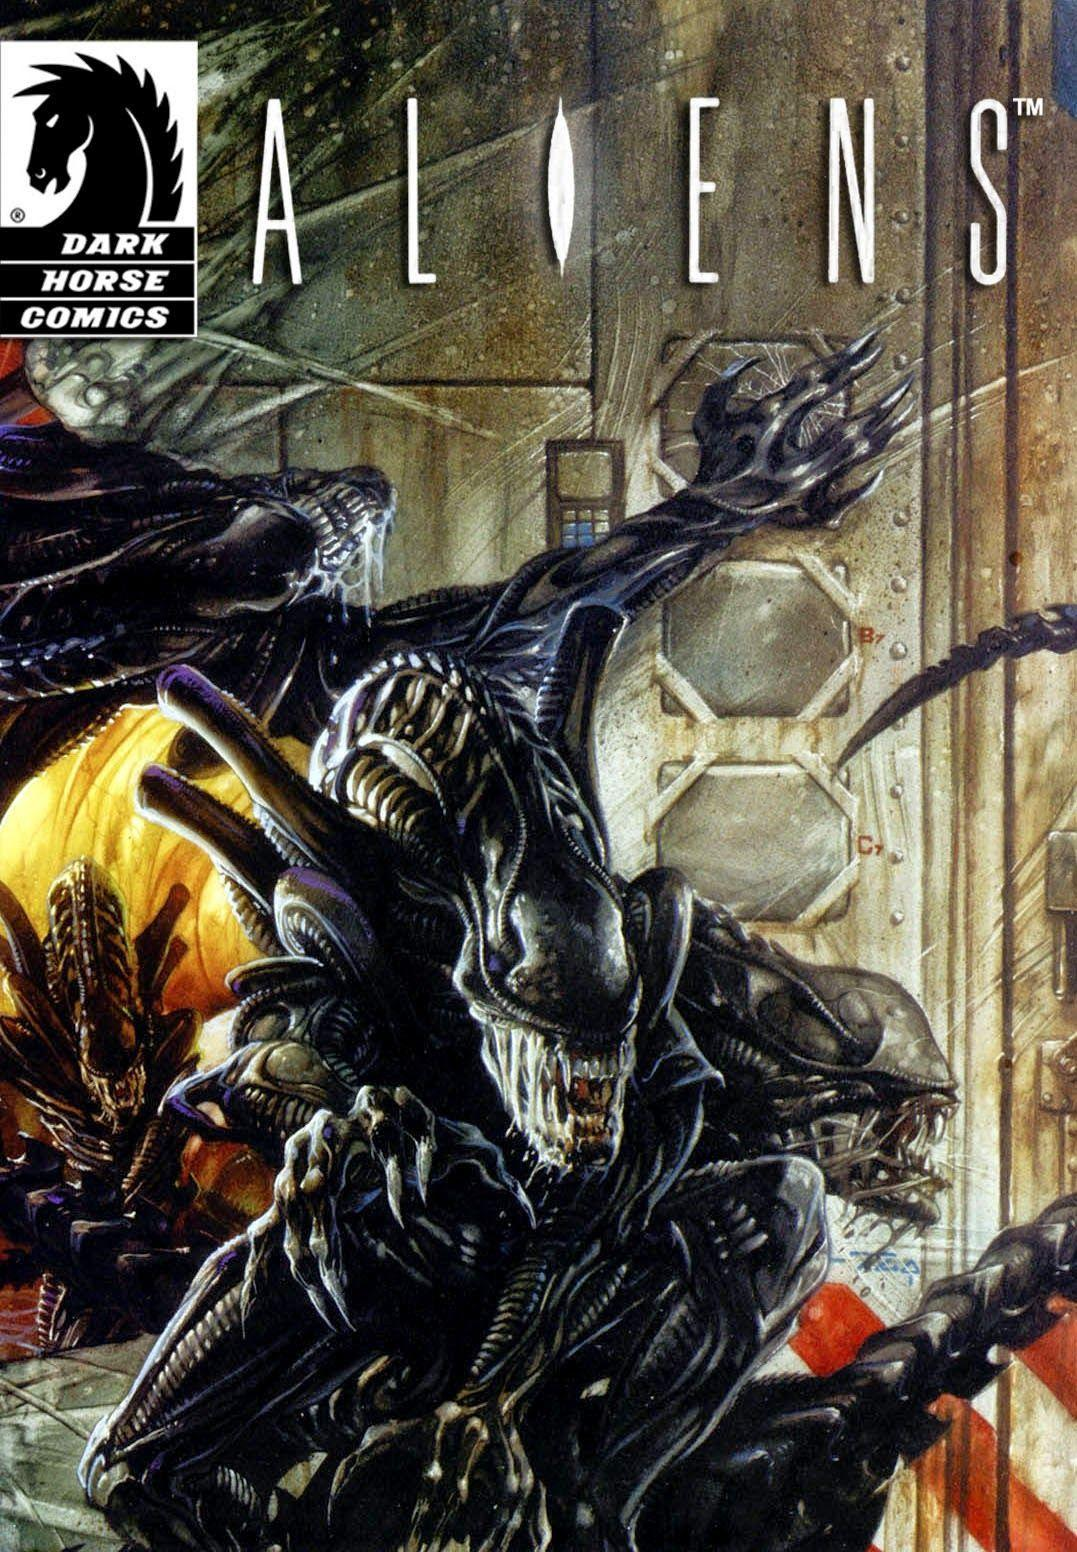 Dark Horse Comics took the industry by storm with release of Aliens